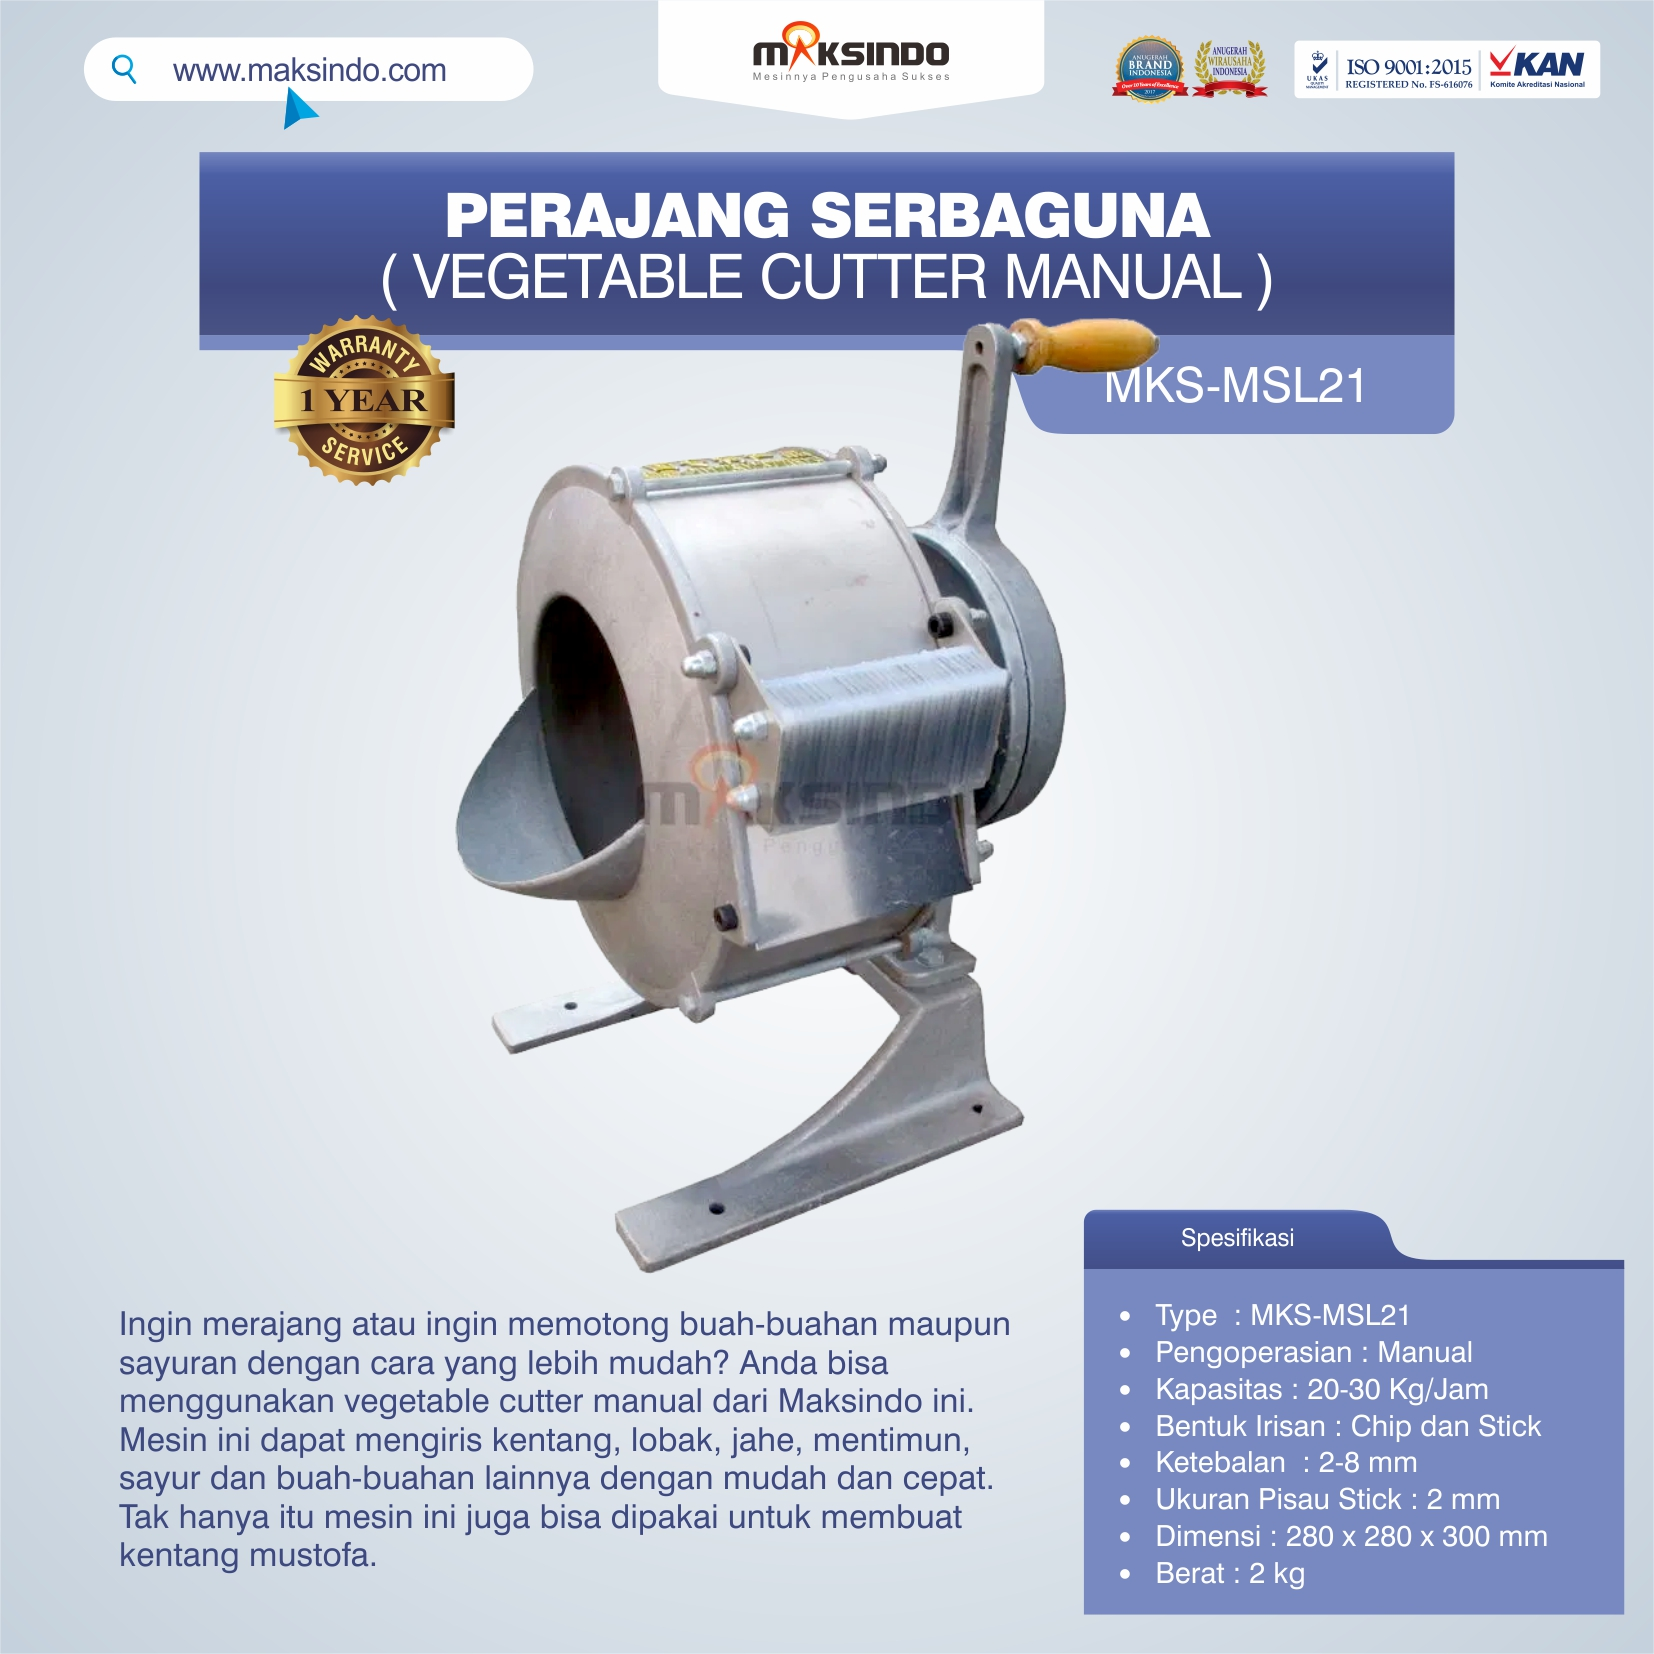 Jual Vegetable Cutter Manual MKS-MSL21 Di Bekasi